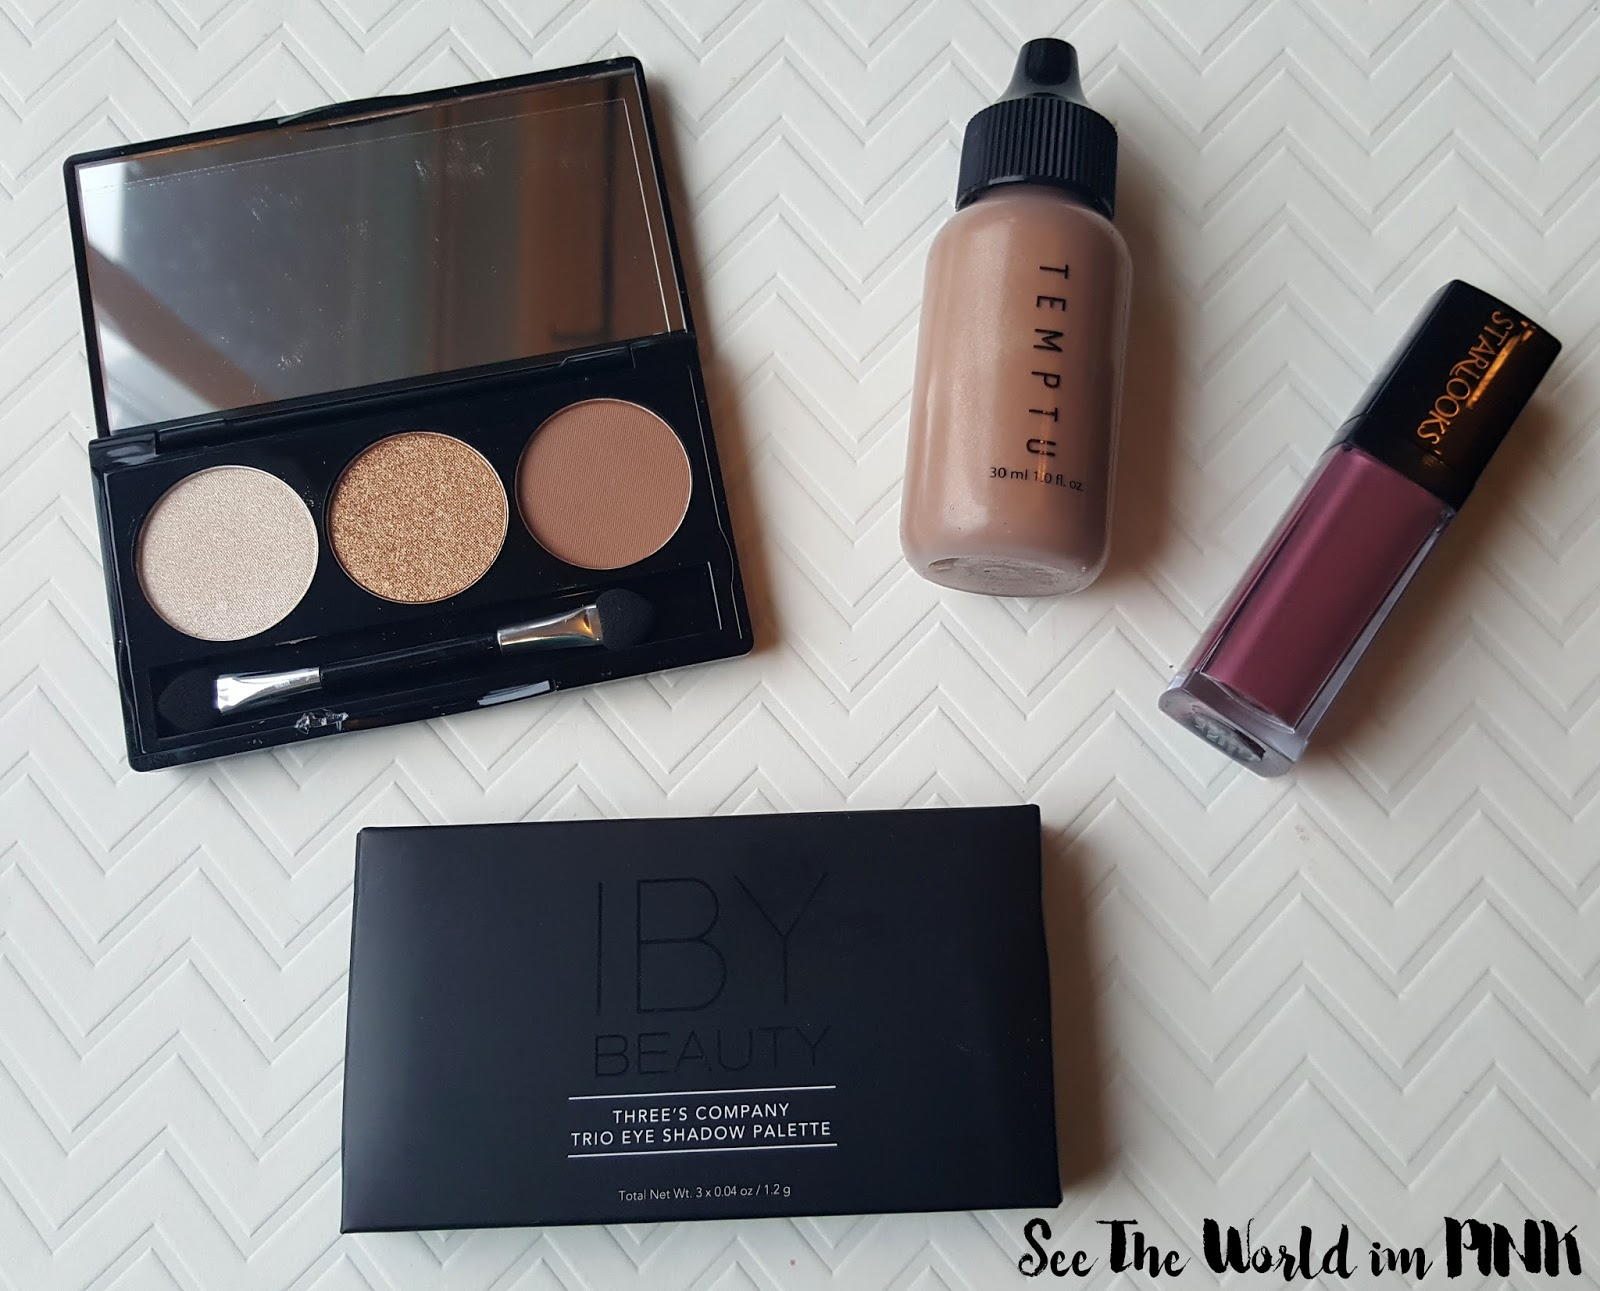 October 2016 Boxycharm - Review and Unboxing